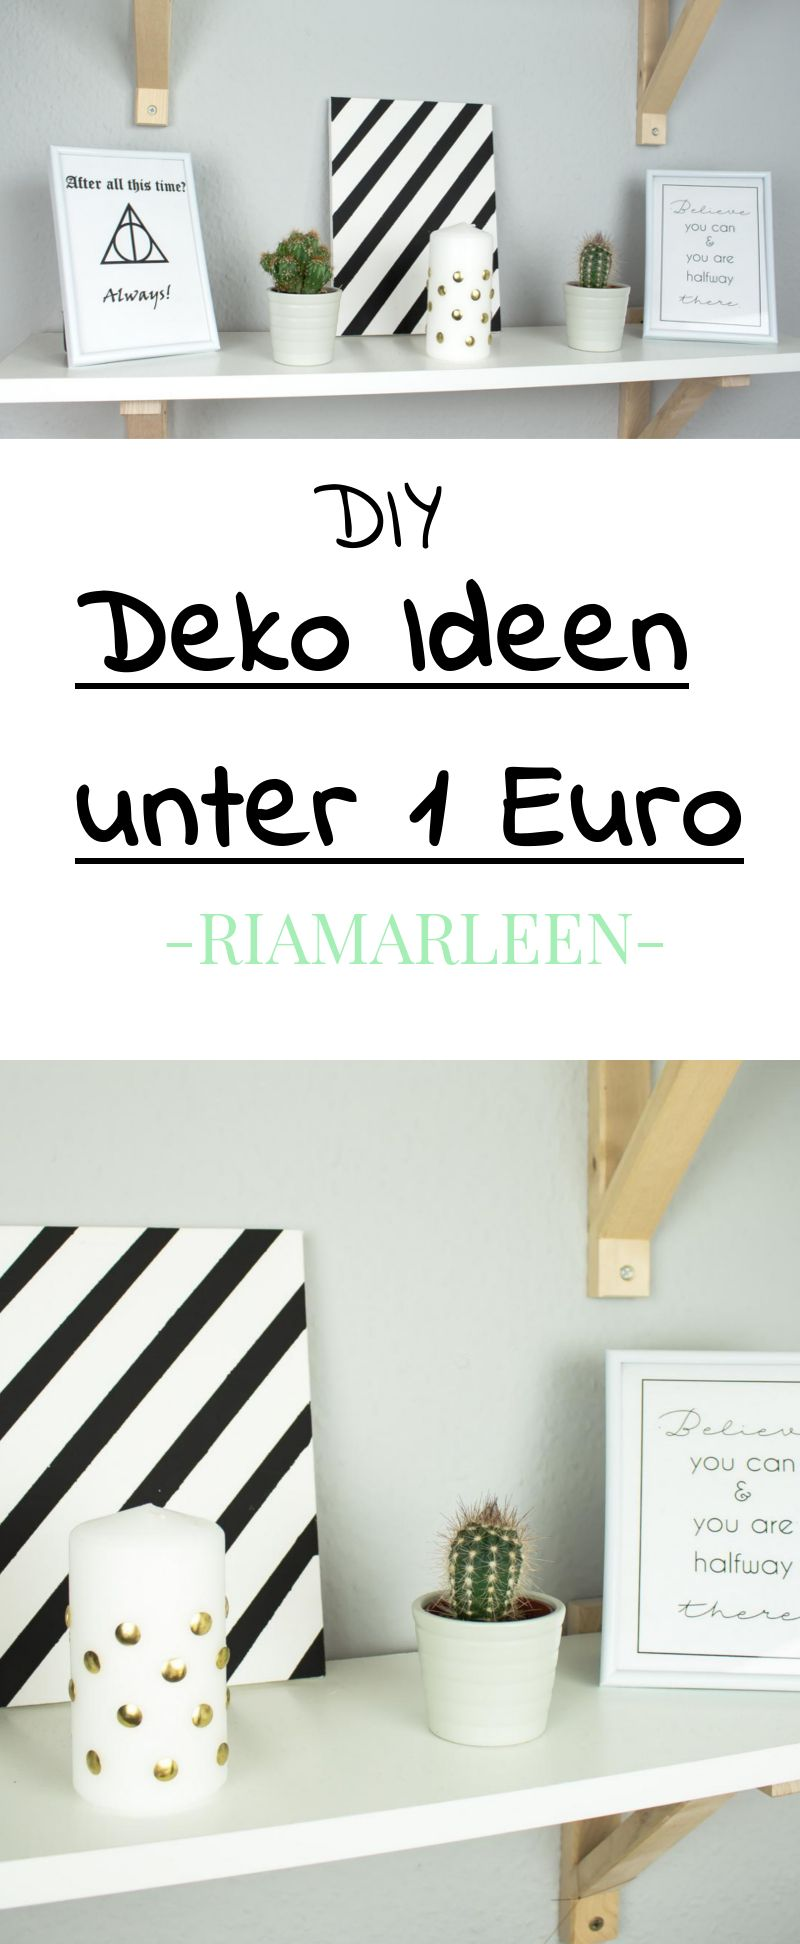 3 sch ne diy deko ideen unter 1 euro diy upcycling gruppe pinterest deko diy deko und. Black Bedroom Furniture Sets. Home Design Ideas